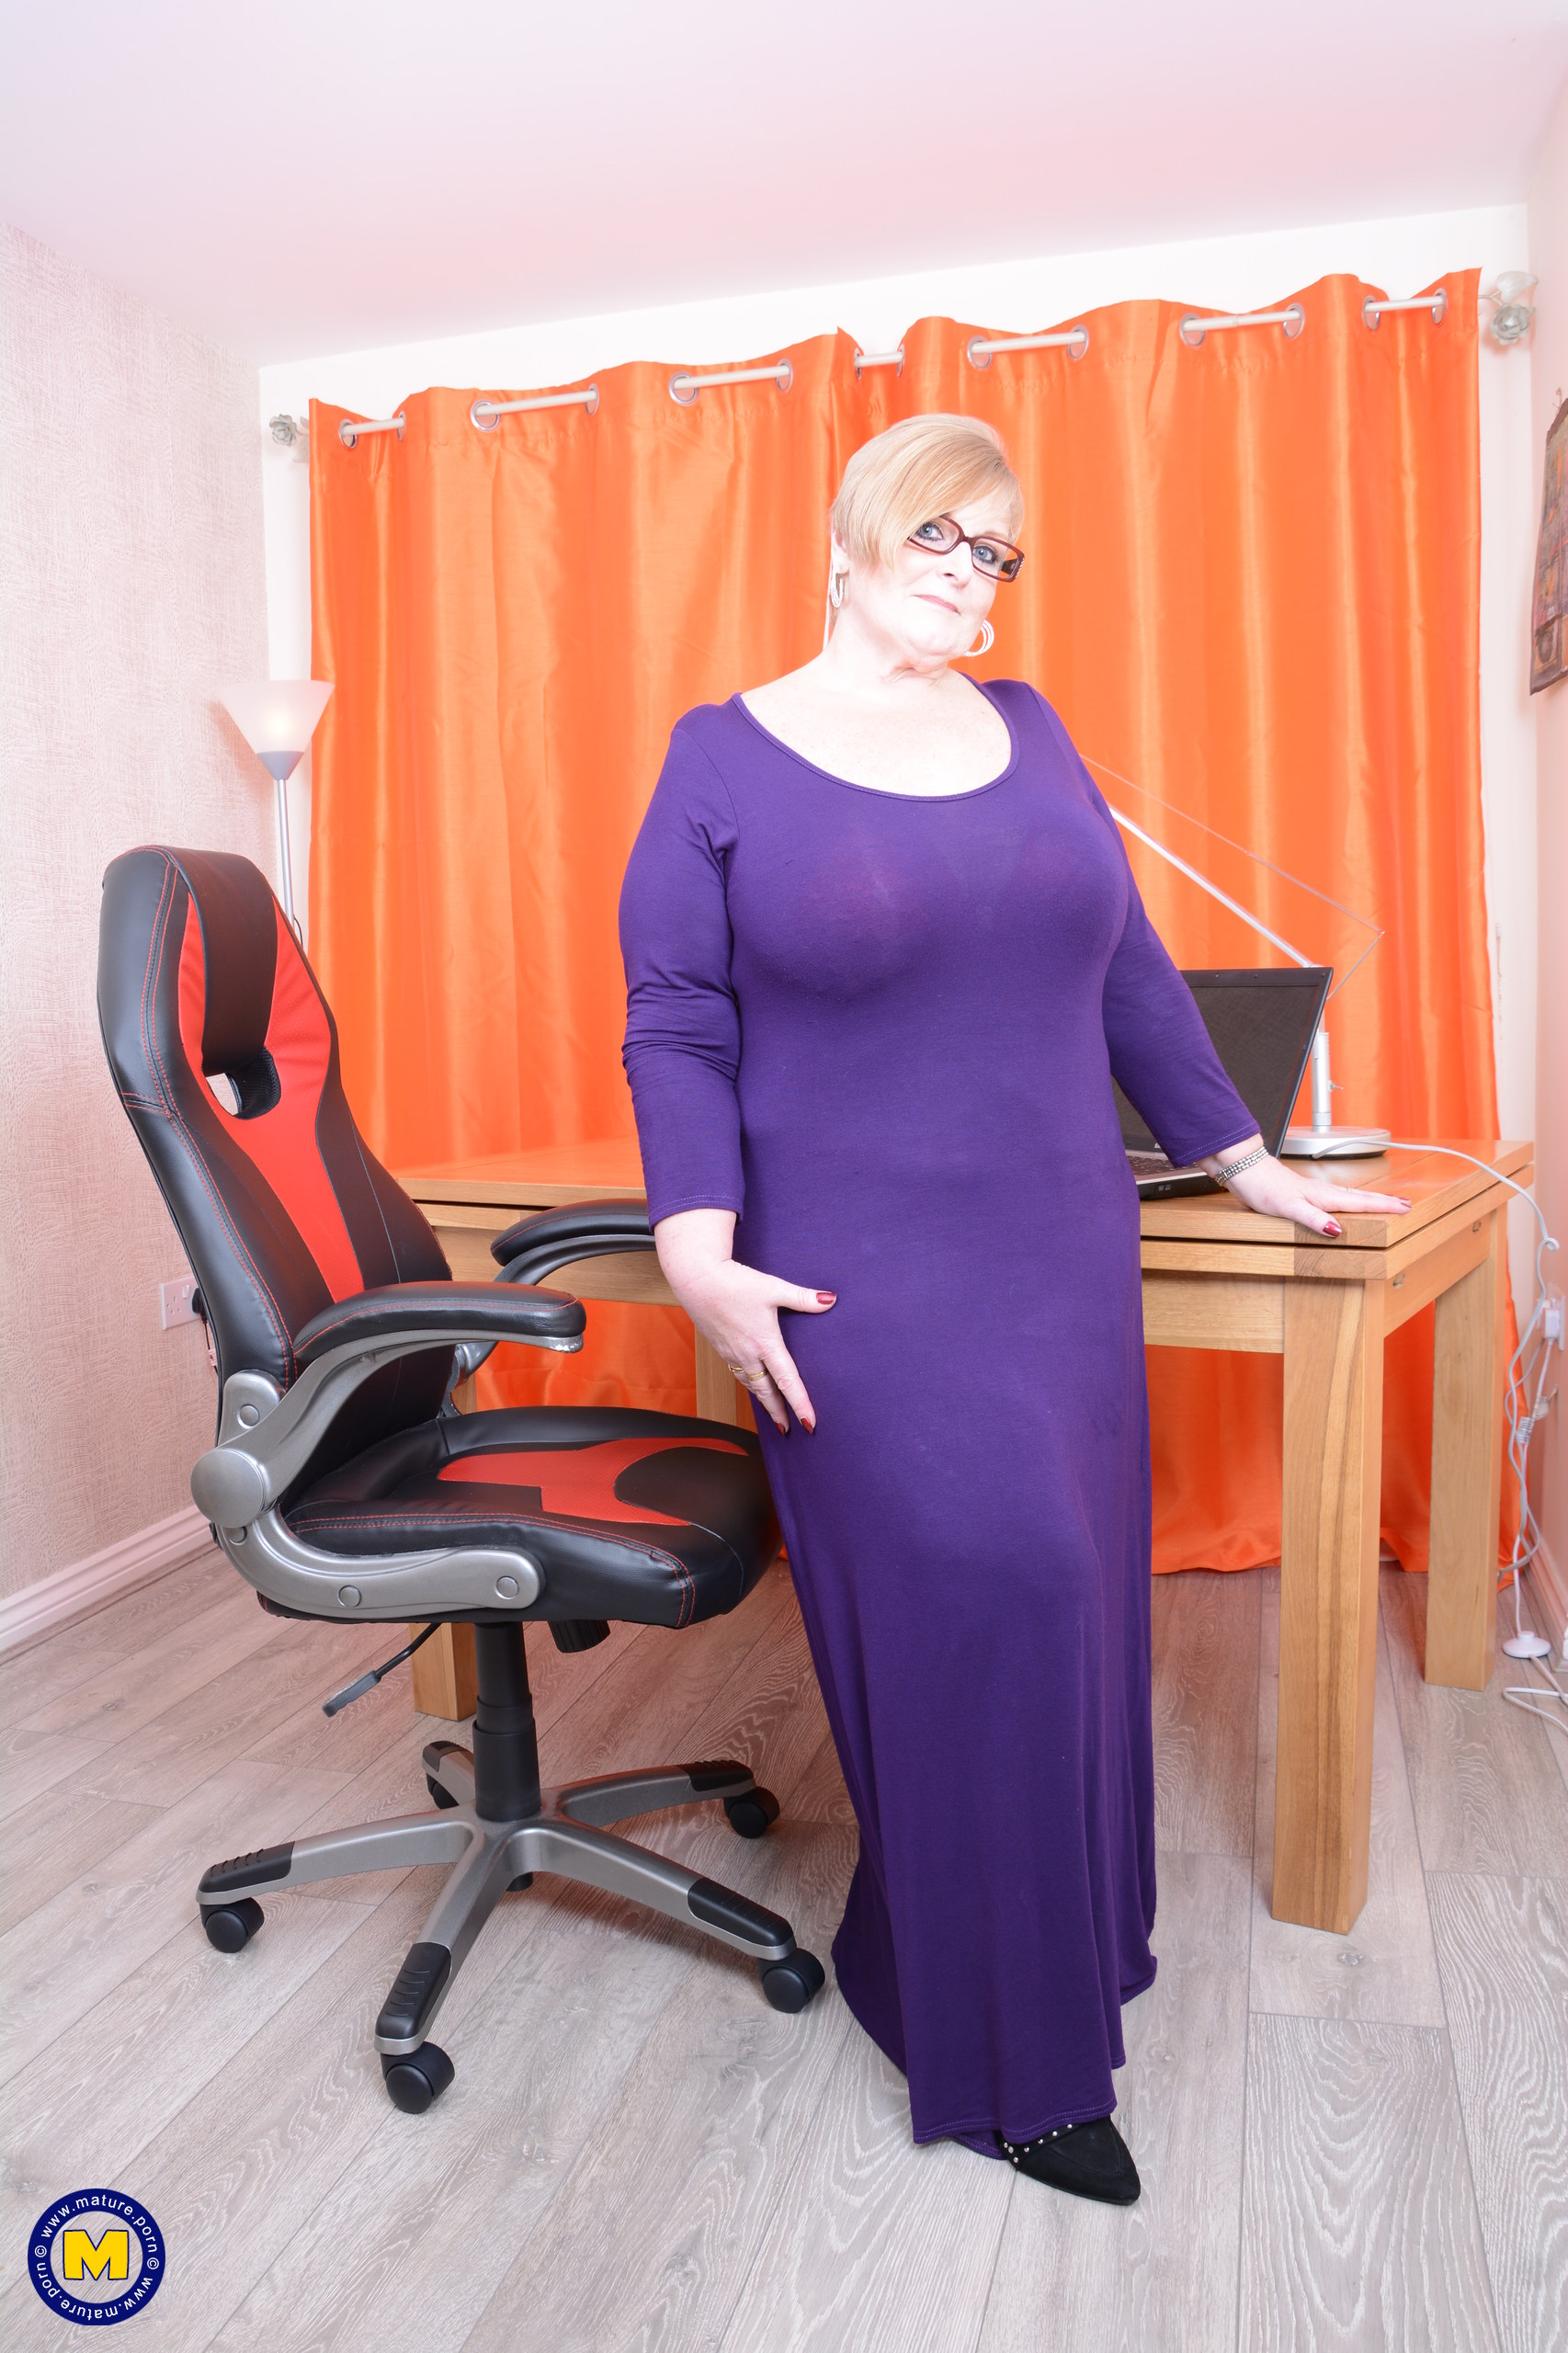 my busty ole office granny feels kinky today – bertha 59 begging for payroll raise #1